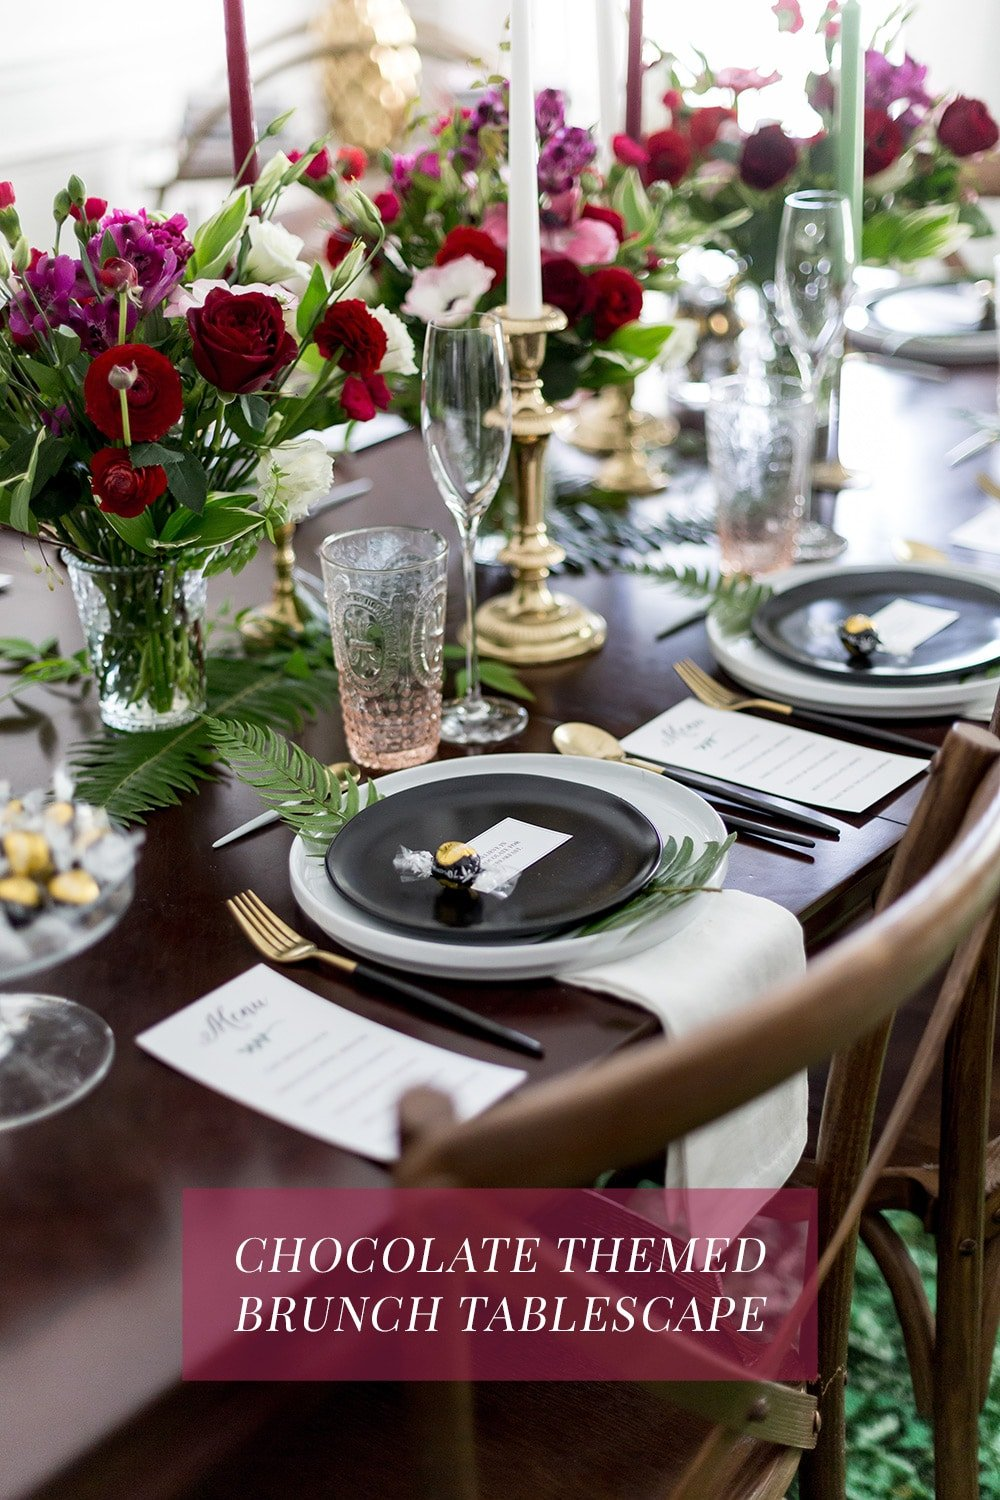 Chocolate Themed Brunch Tablescape Inspiration!